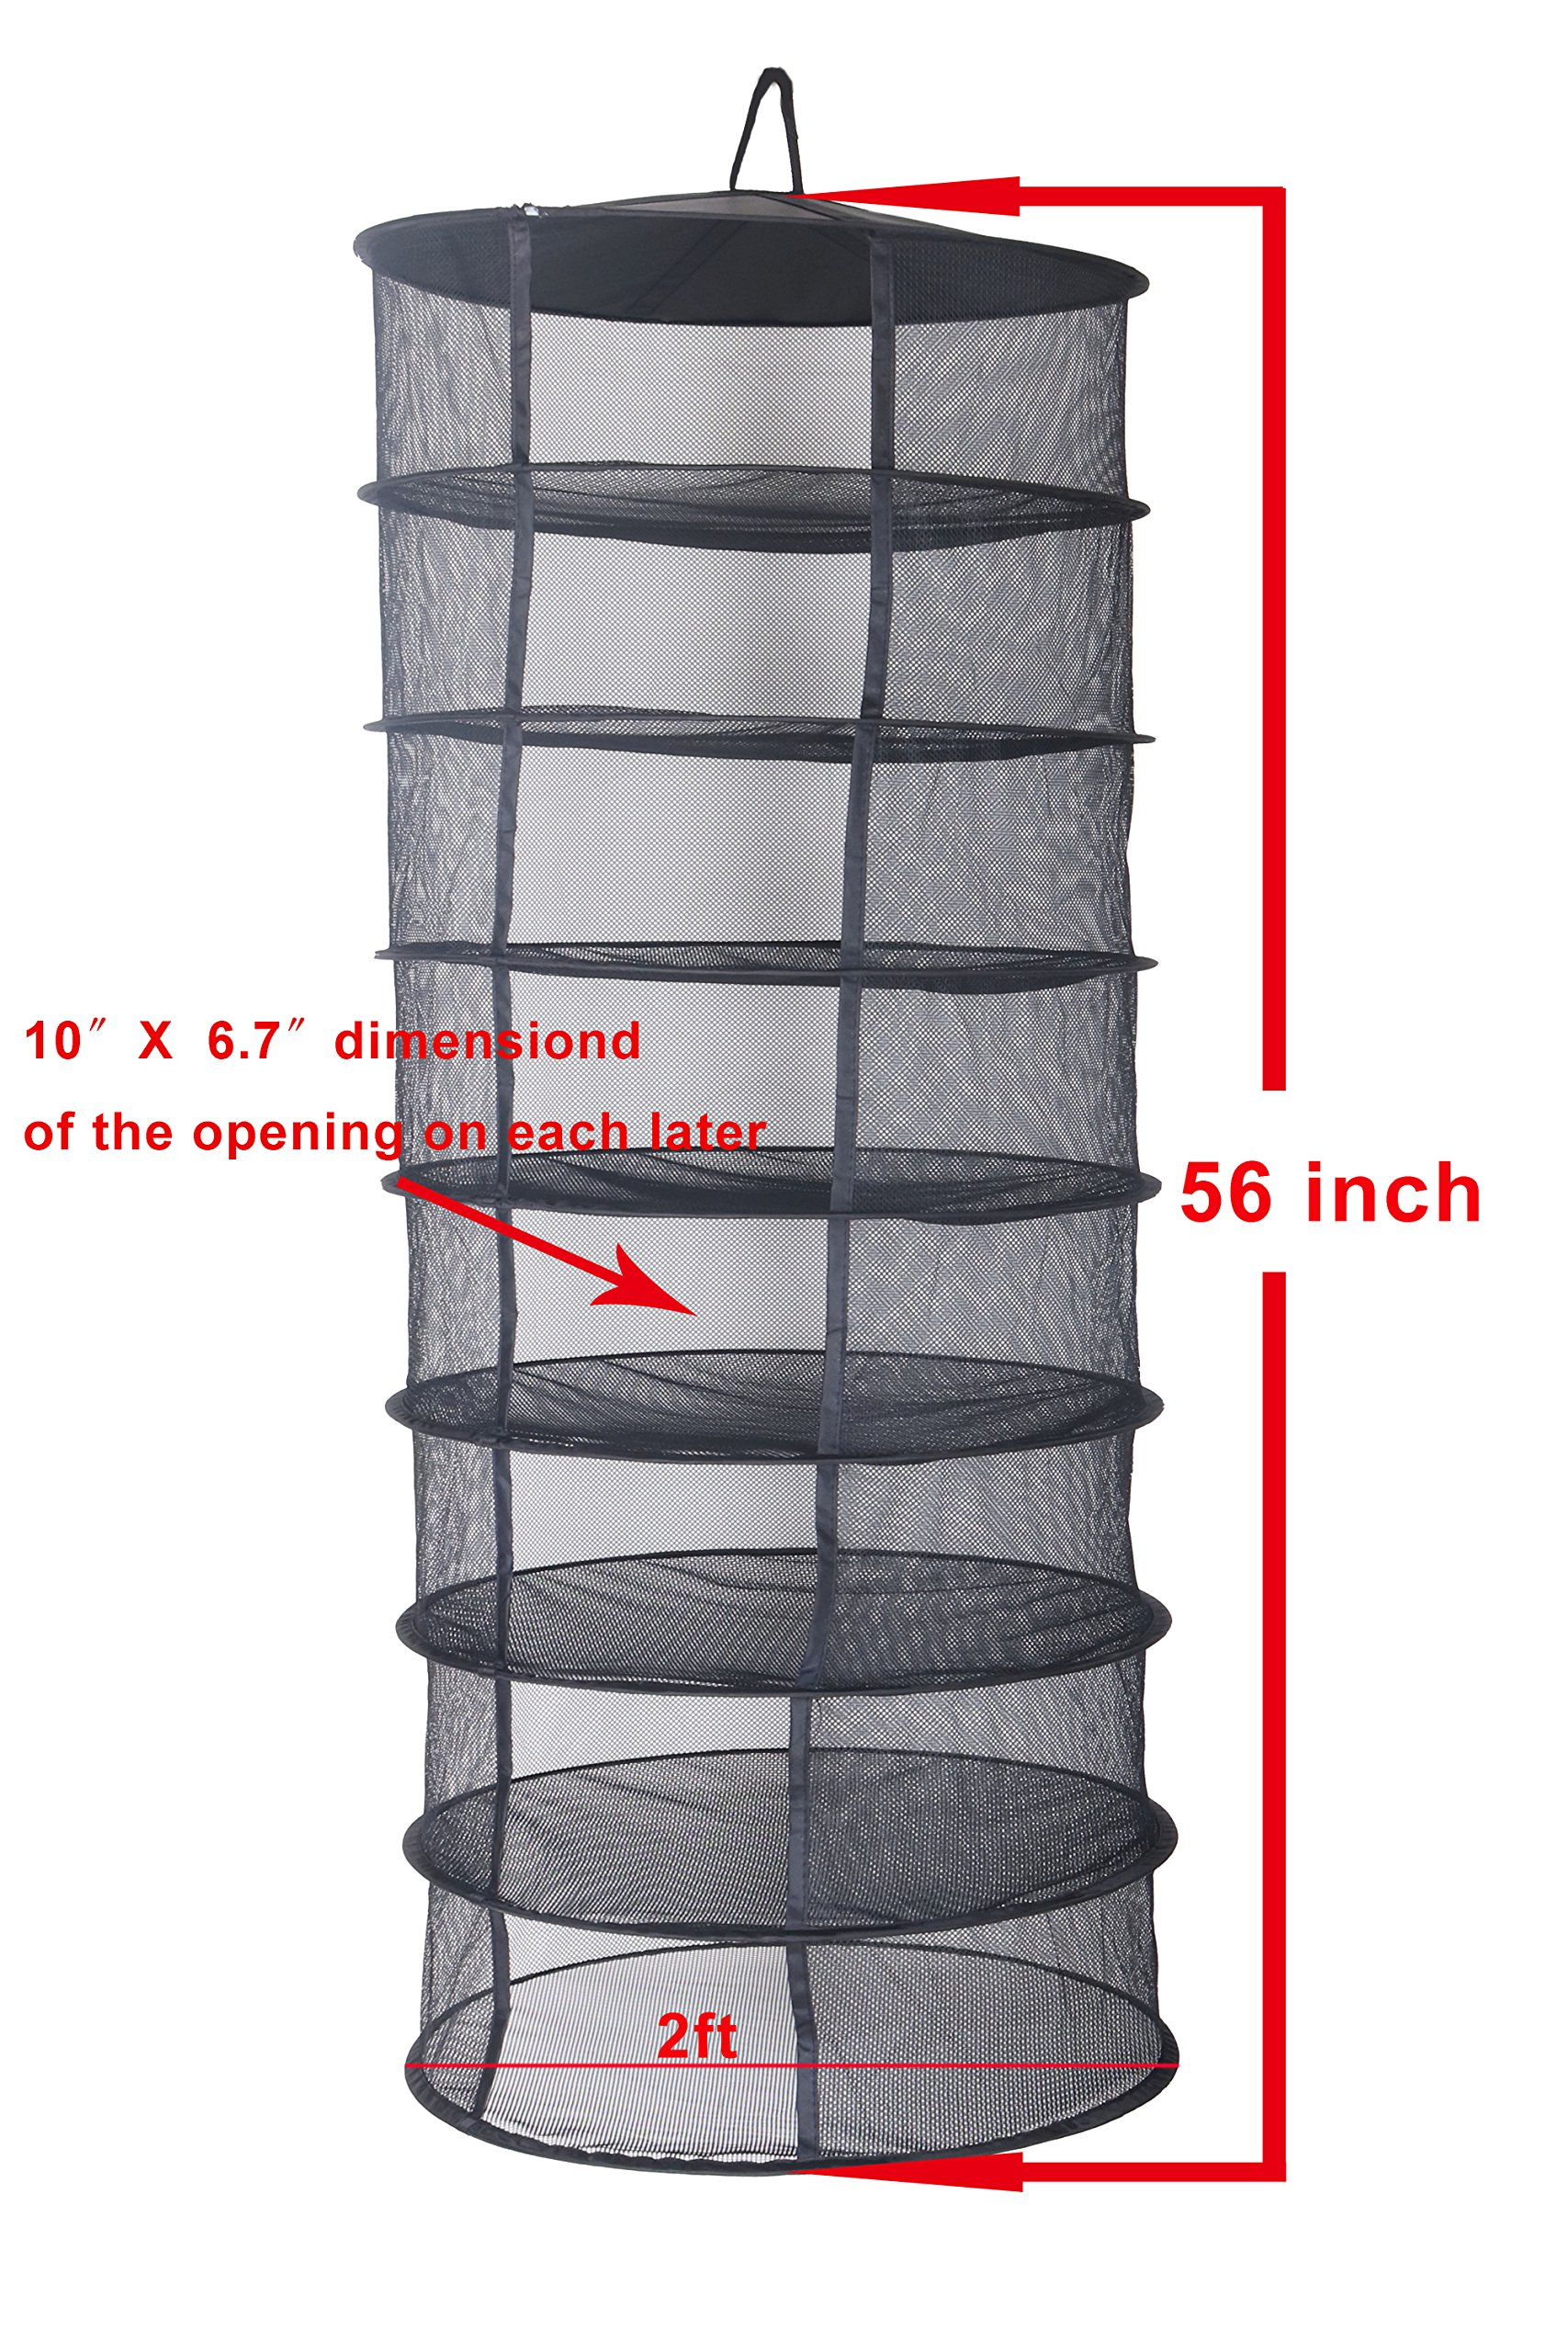 Zazzy 2ft 8 Layer Black Mesh Hanging Herb Drying Rack Dry Net by Zazzy (Image #2)